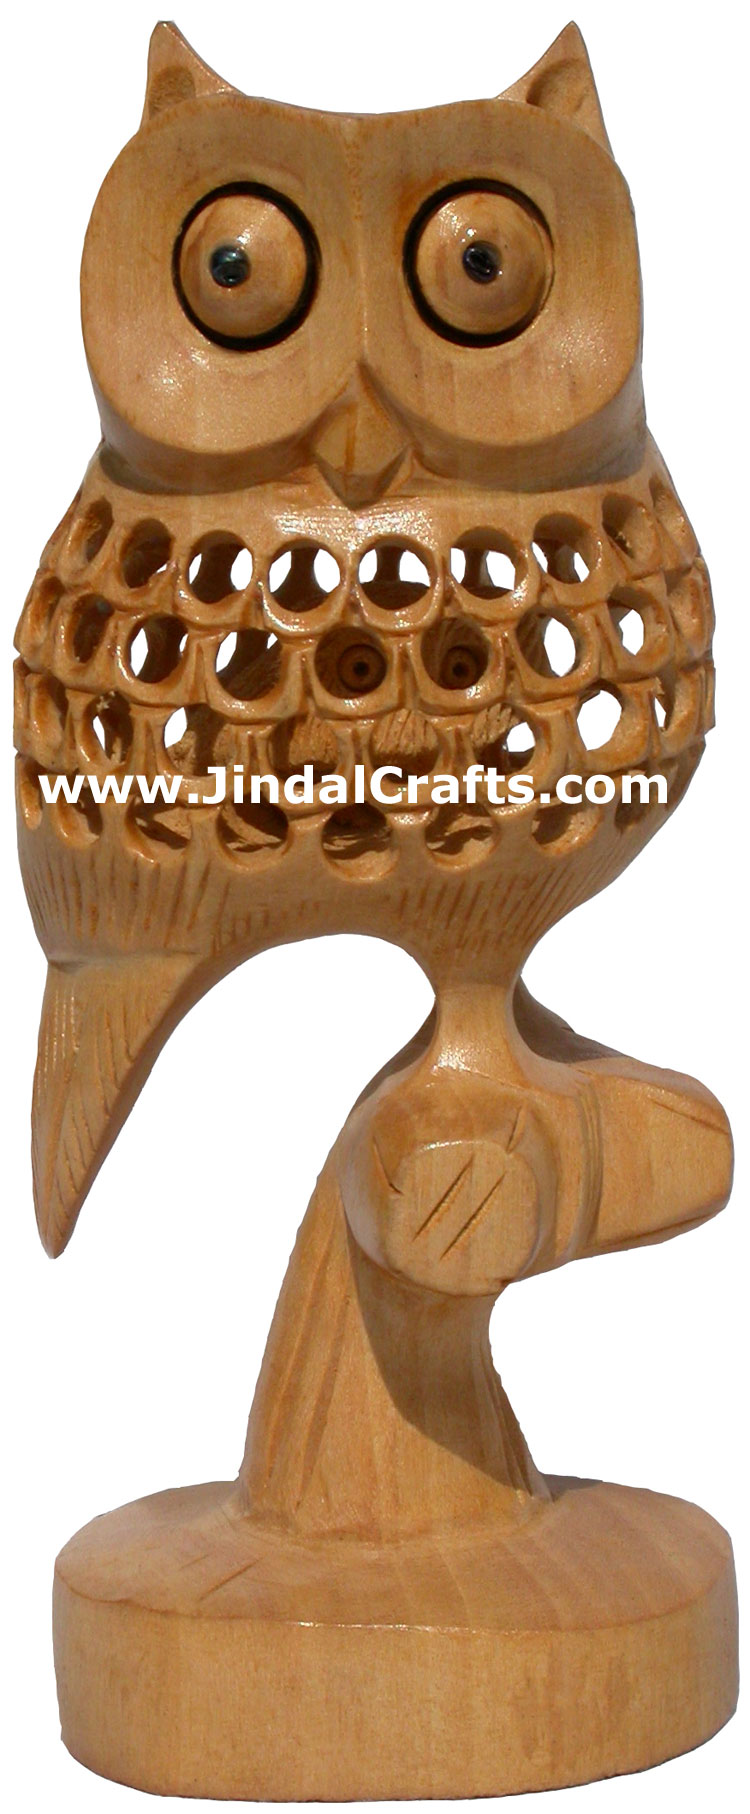 Hand Carved Wooden Lucky Owl India Artifact Decoration Figurine Sculpture Idols